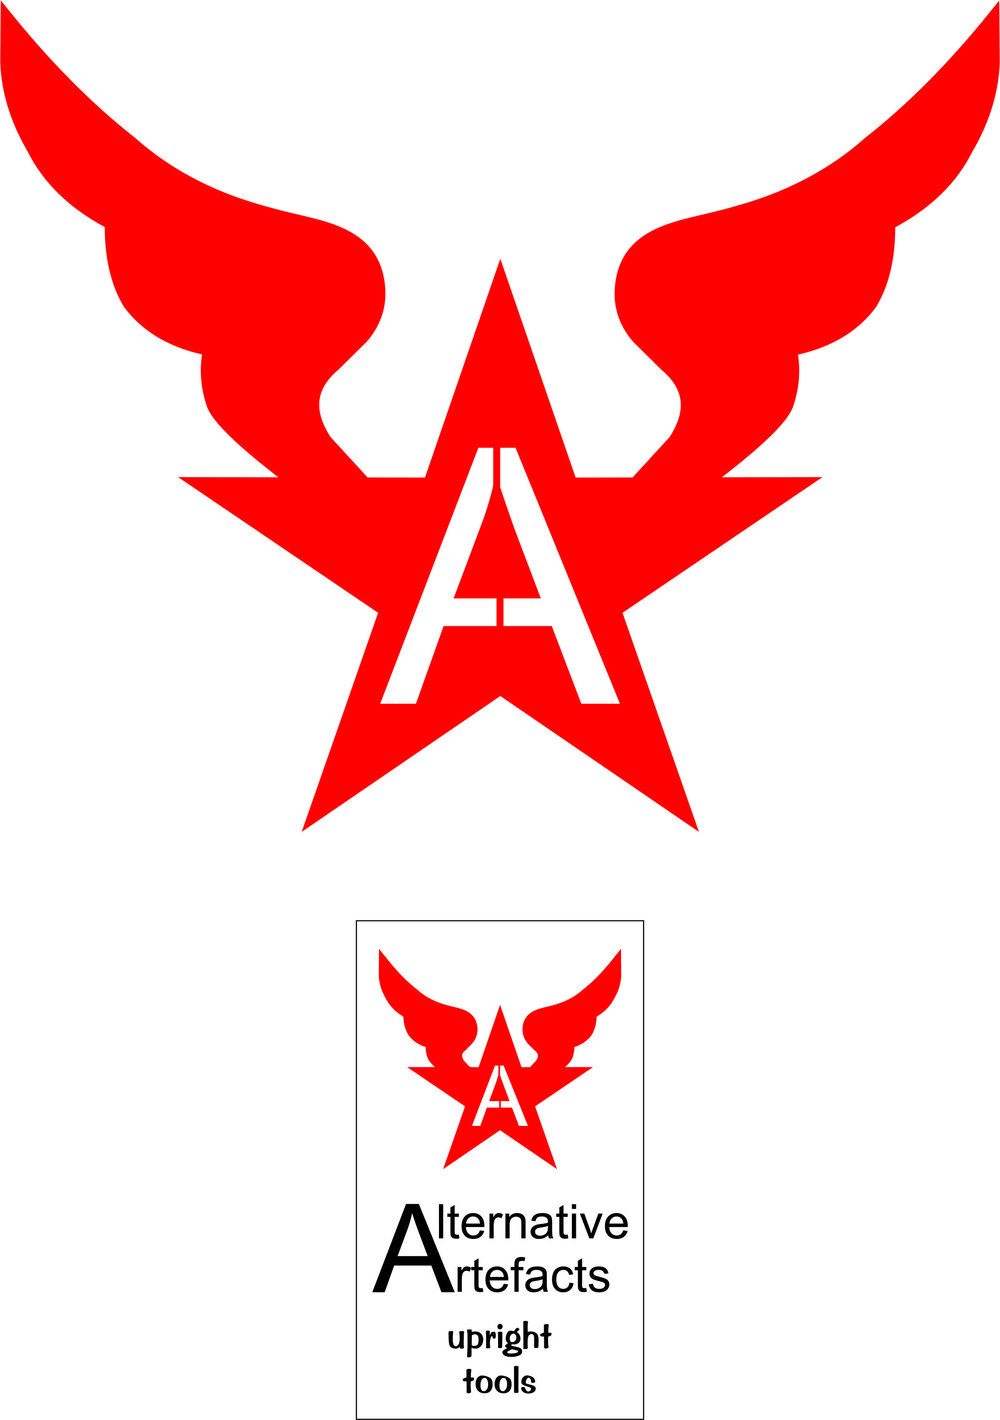 Alternative Artefacts wing June 3 '18 red star white A.jpg